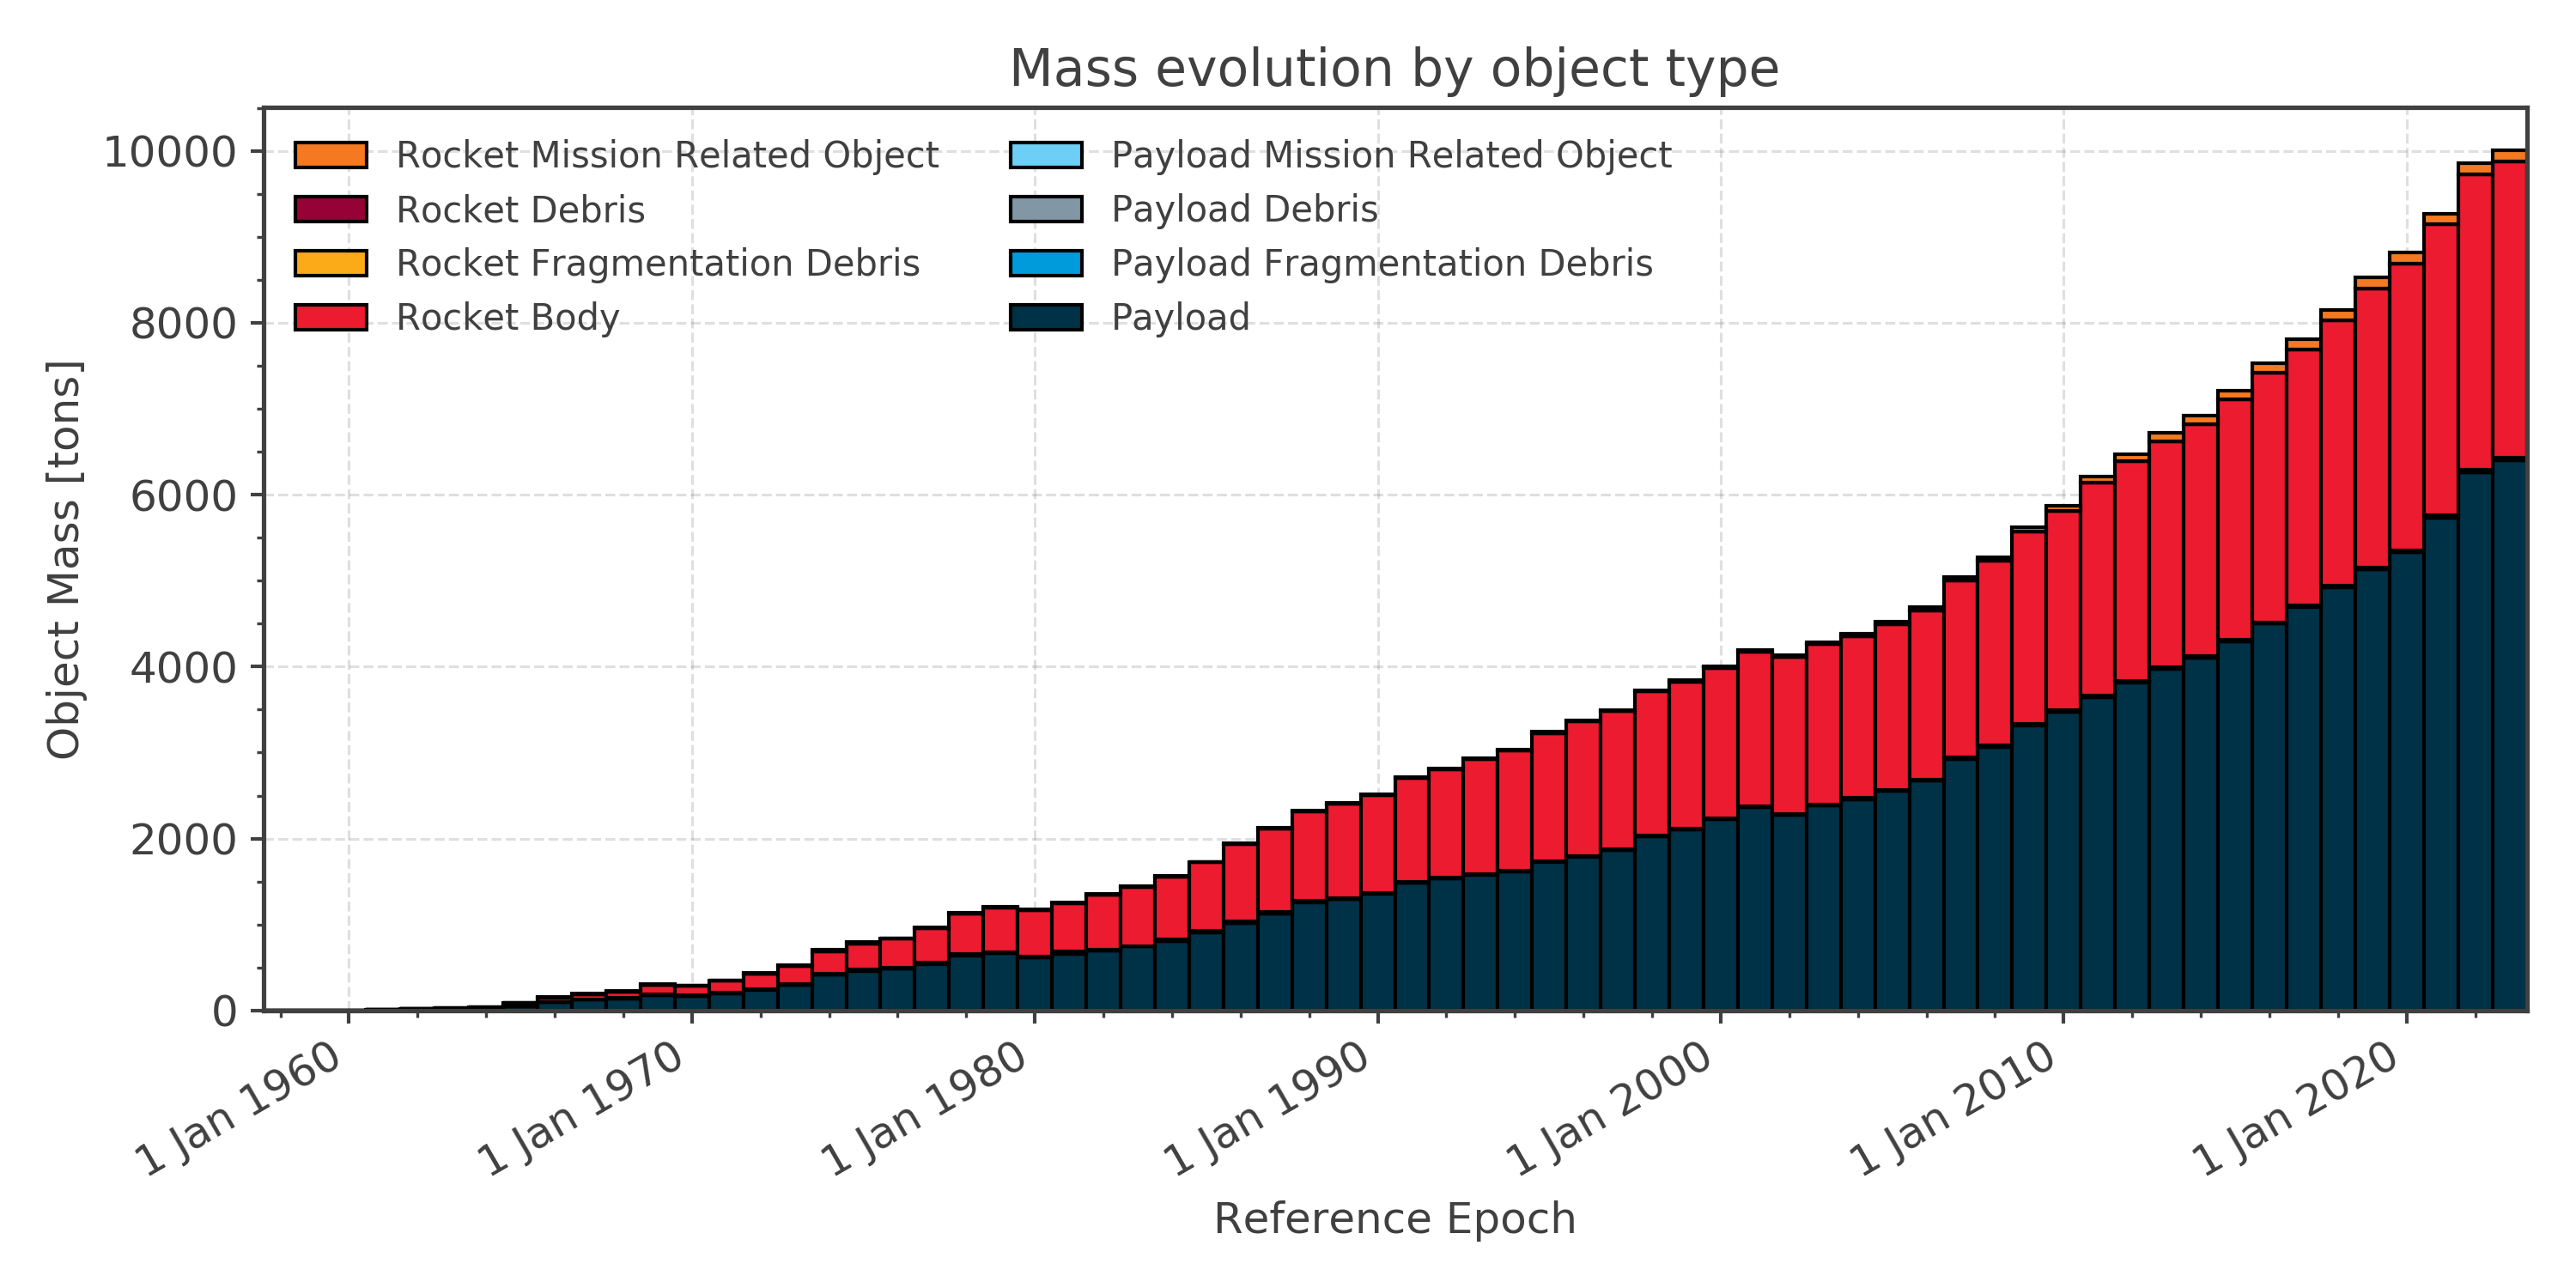 Mass in orbit over time subdivided in object classes